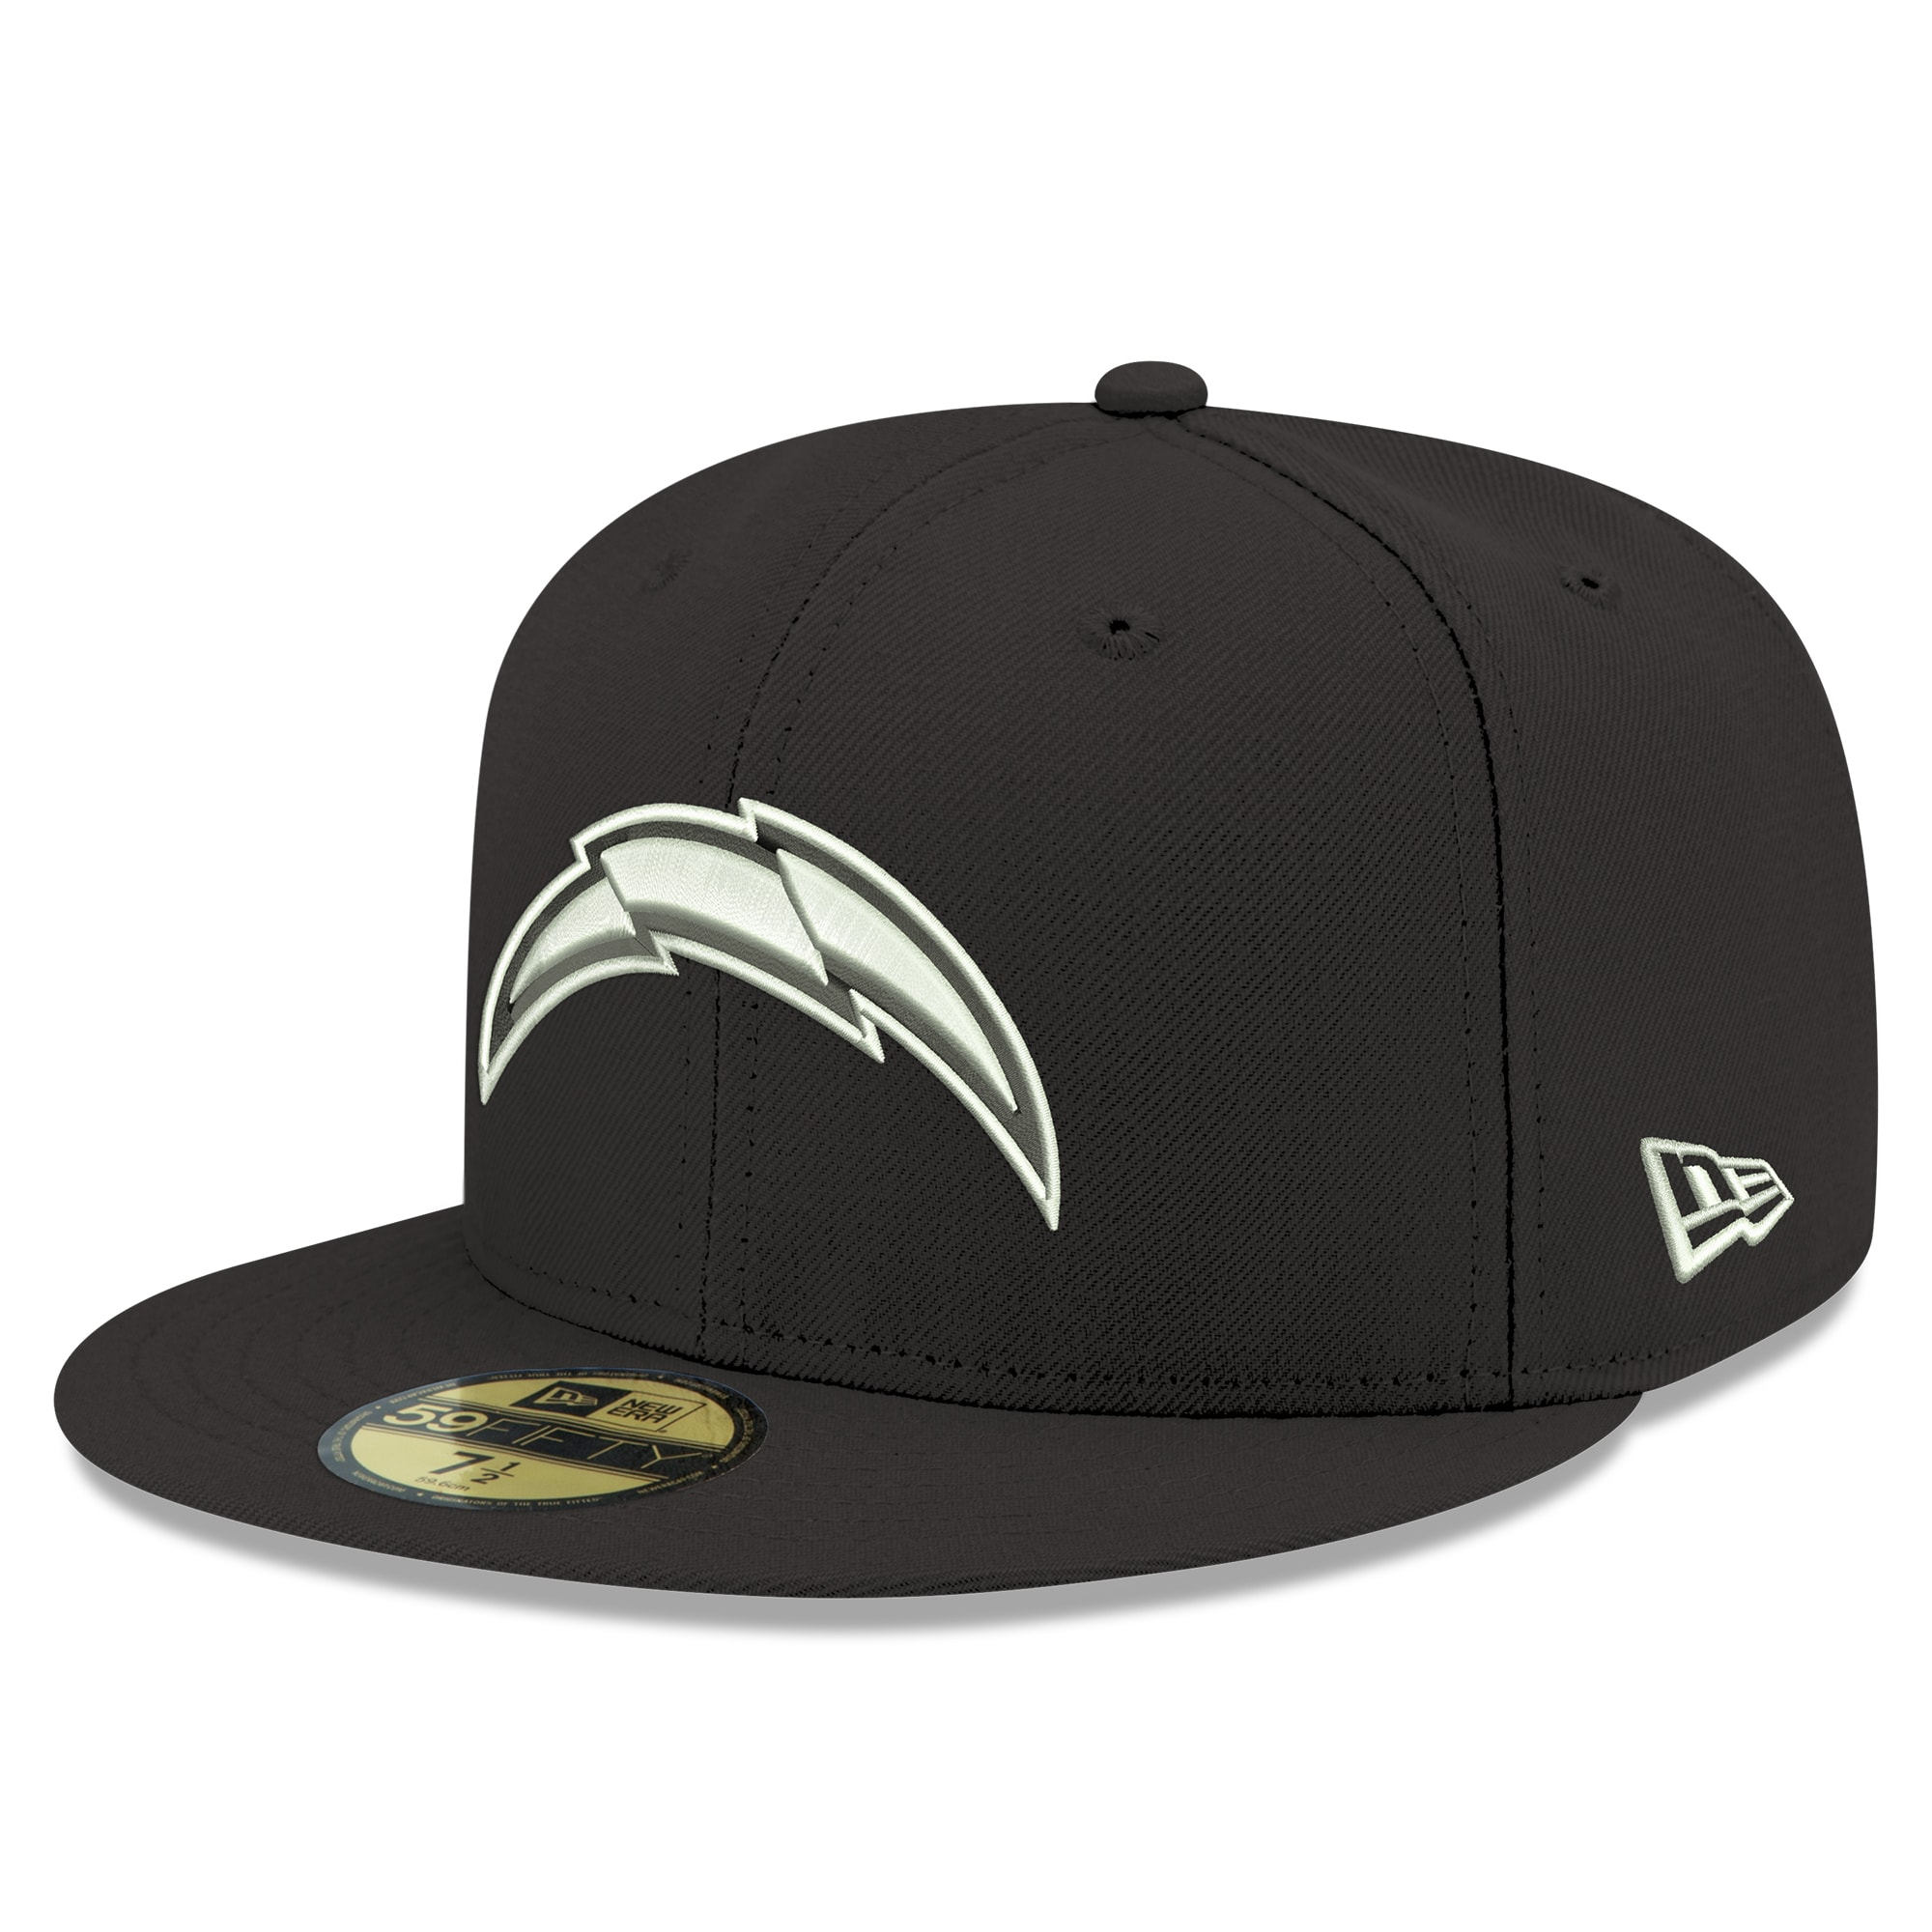 Los Angeles Chargers New Era B-Dub Logo 59FIFTY Fitted Hat - Black